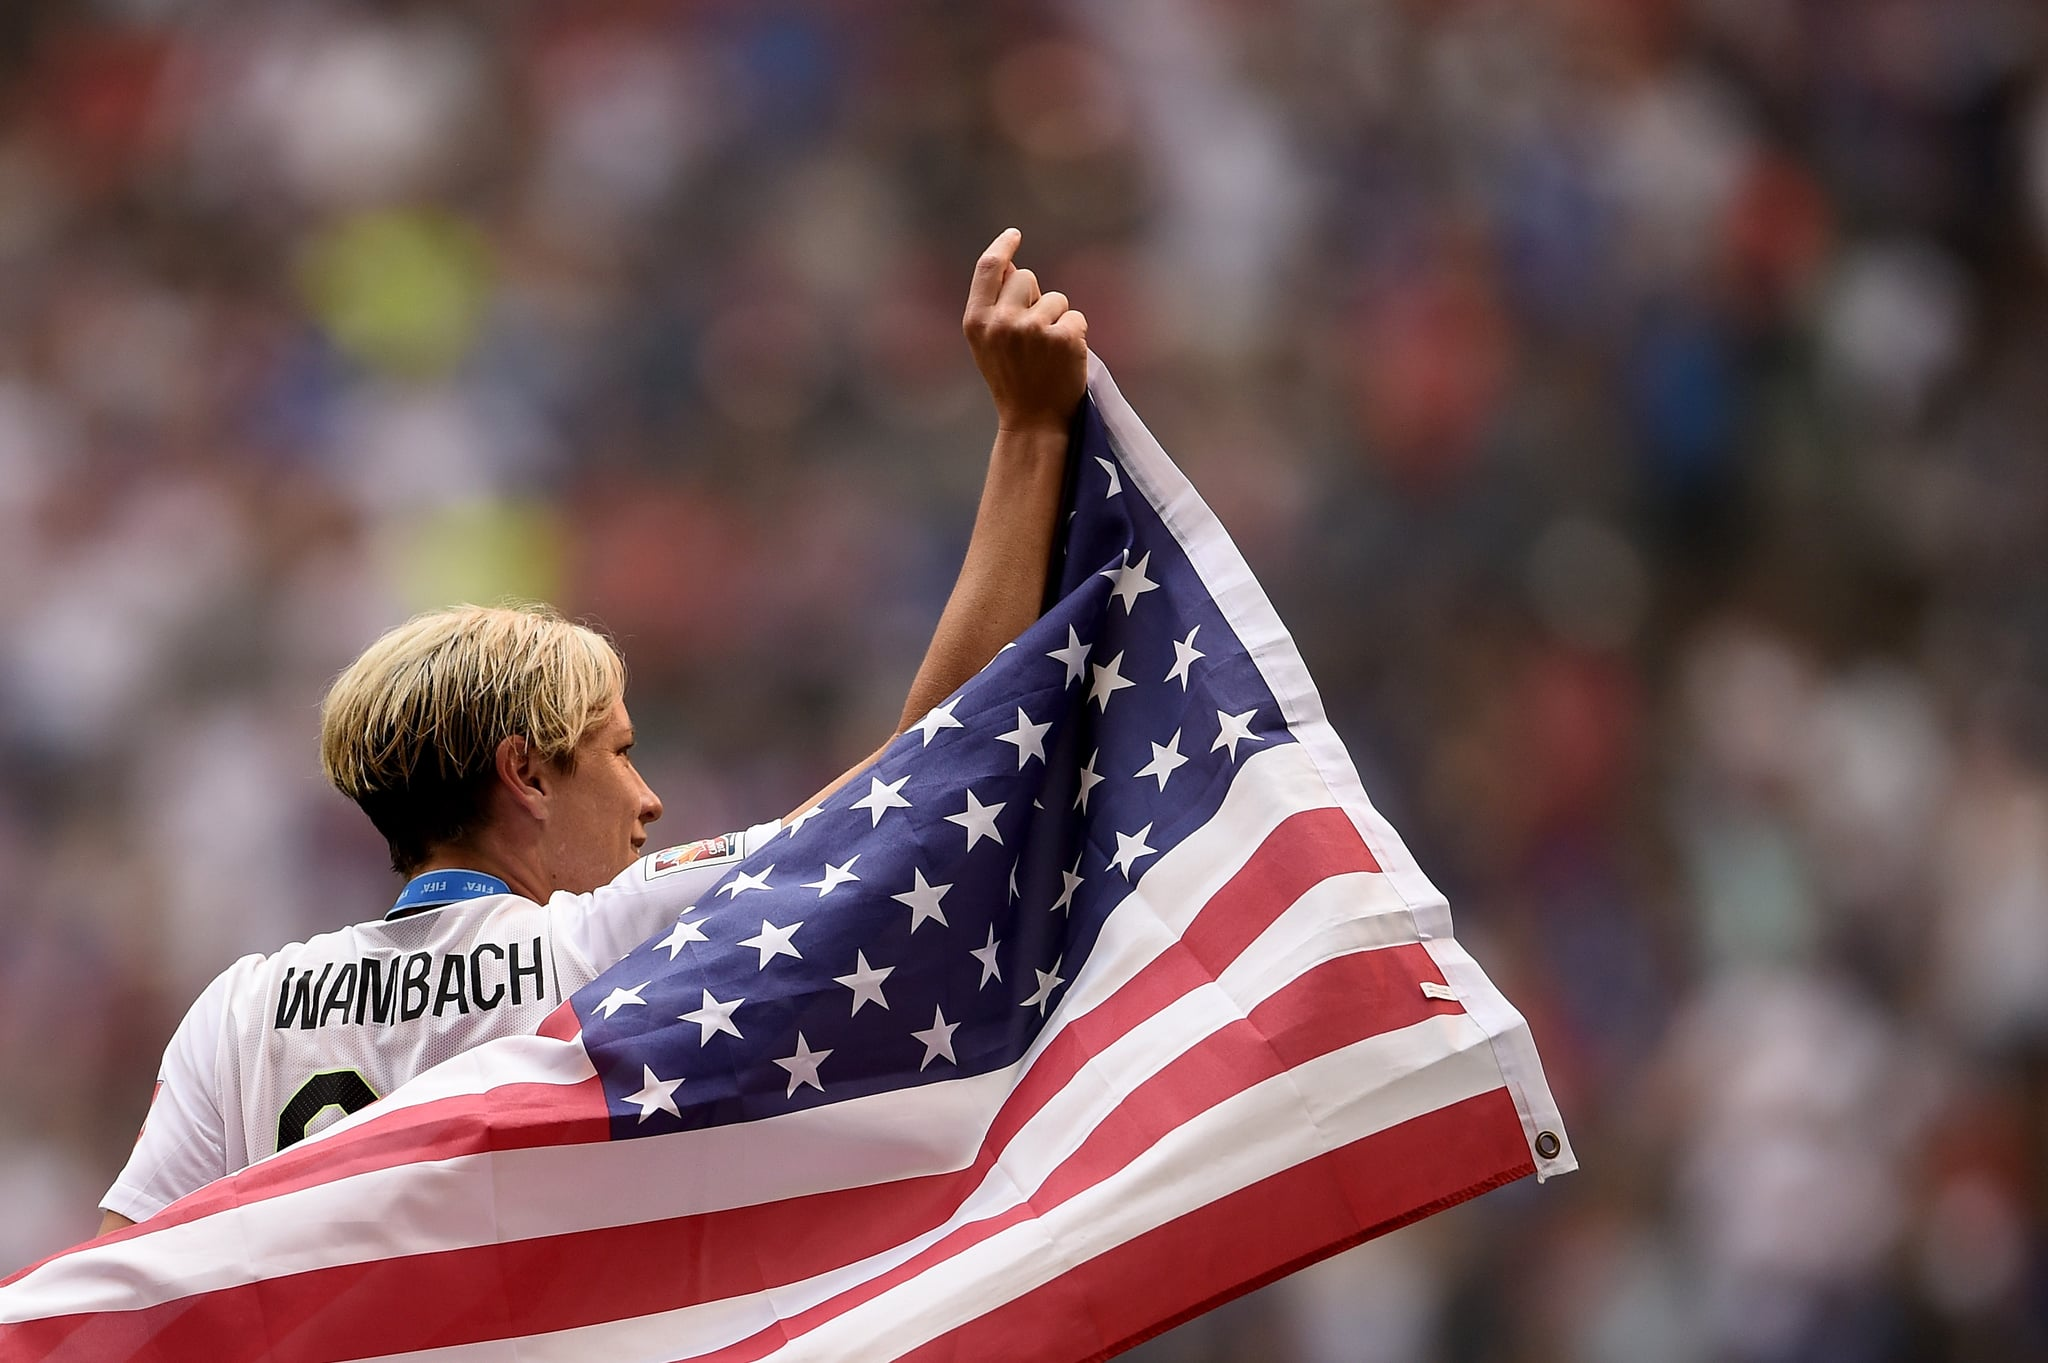 VANCOUVER, BC - JULY 05:  Abby Wambach #20 of the United States of America celebrates after their 5-2 win over Japan in the FIFA Women's World Cup Canada 2015 Final at BC Place Stadium on July 5, 2015 in Vancouver, Canada.  (Photo by Dennis Grombkowski/Getty Images)